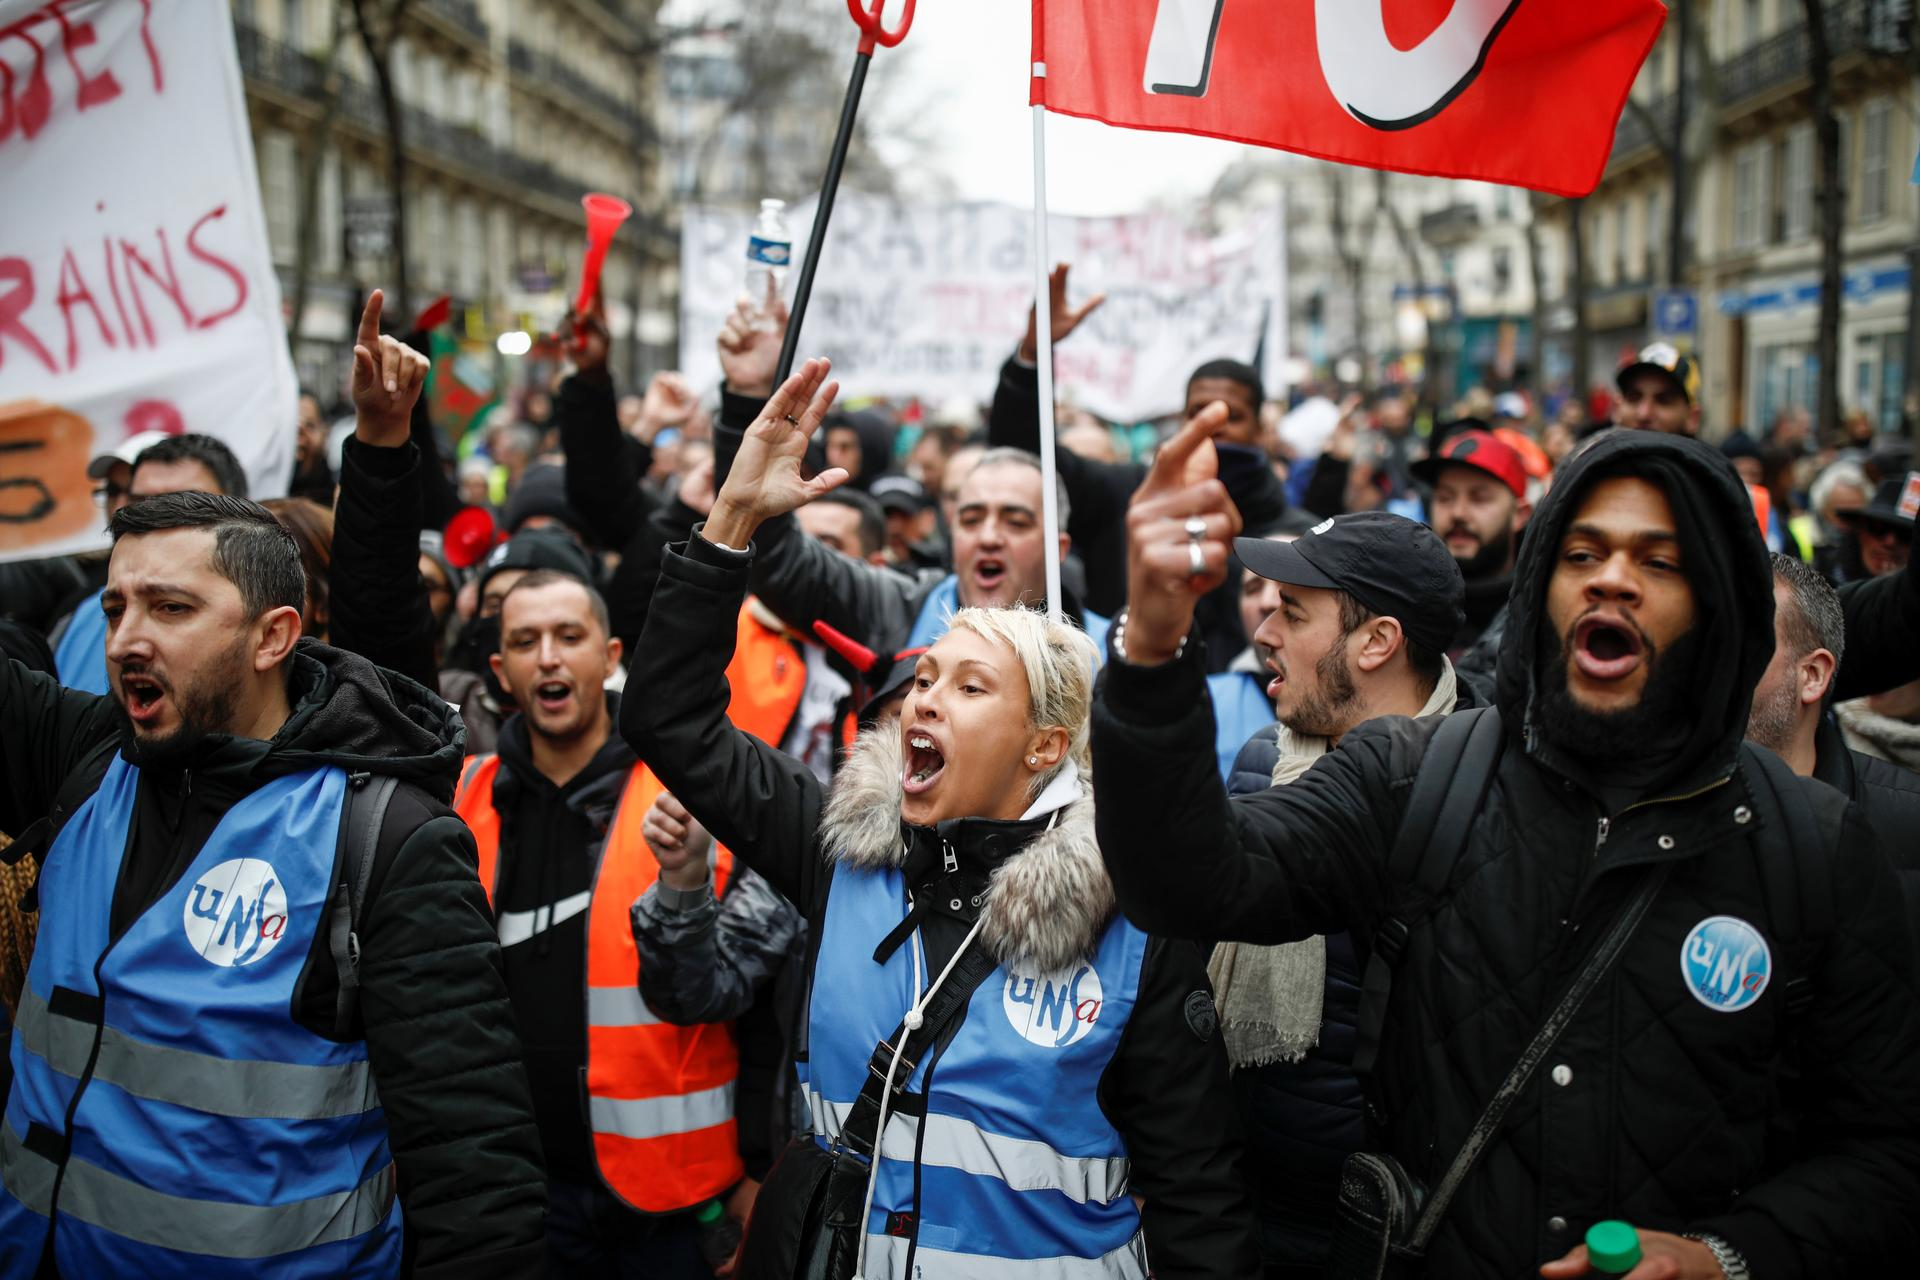 Scuffles break out in Paris as pensions protesters, 'yellow vests' march